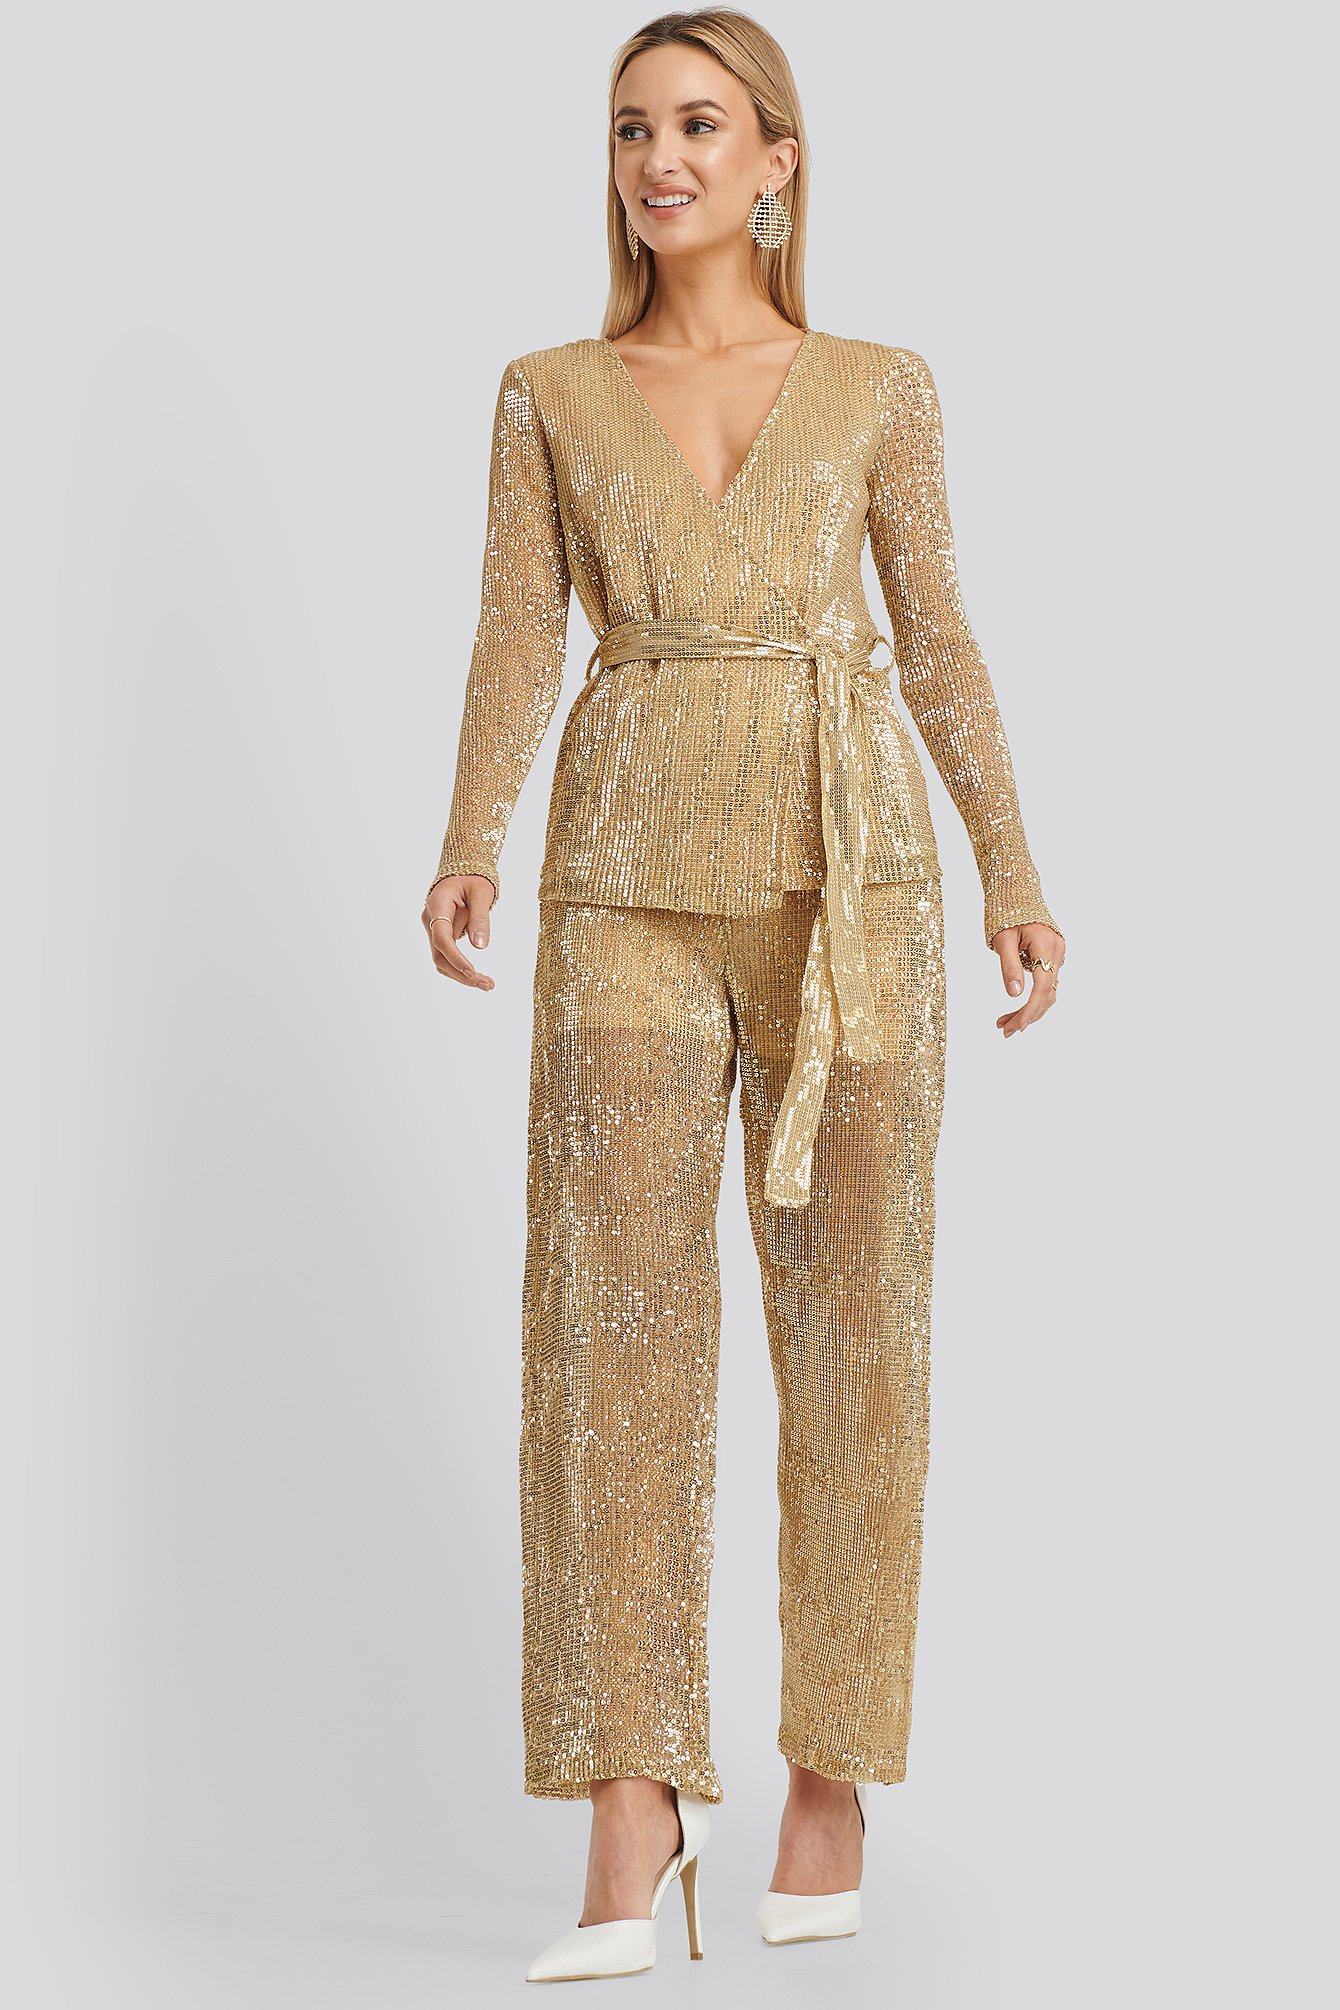 NA-KD Party Sequin Straight Pant - Gold | Bekleidung > Hosen > Weite Hosen | NA-KD Party